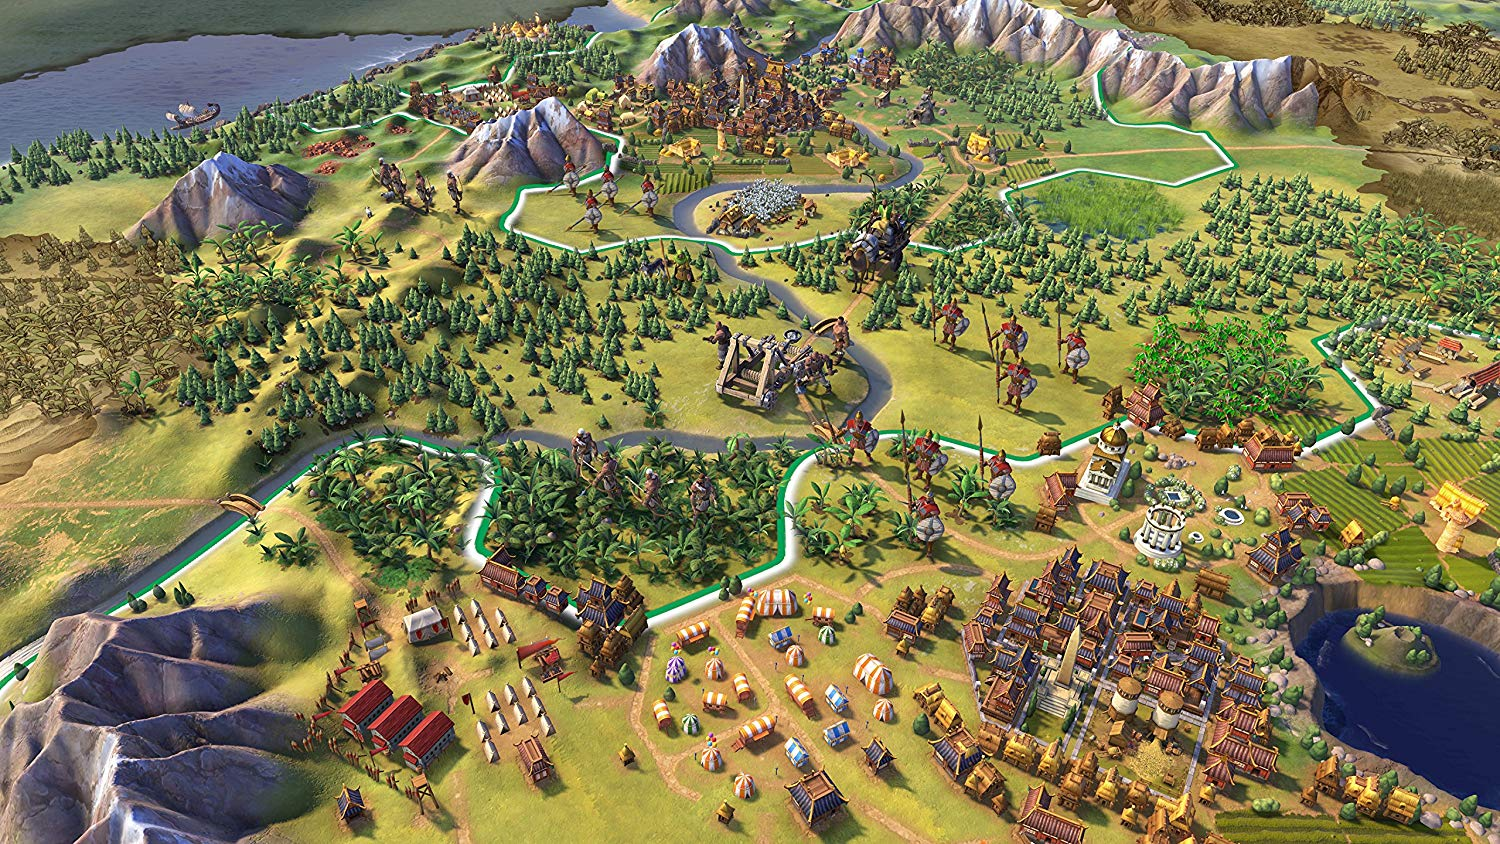 Best PC Strategy Games to Play in 2019 - Top Modern RTS